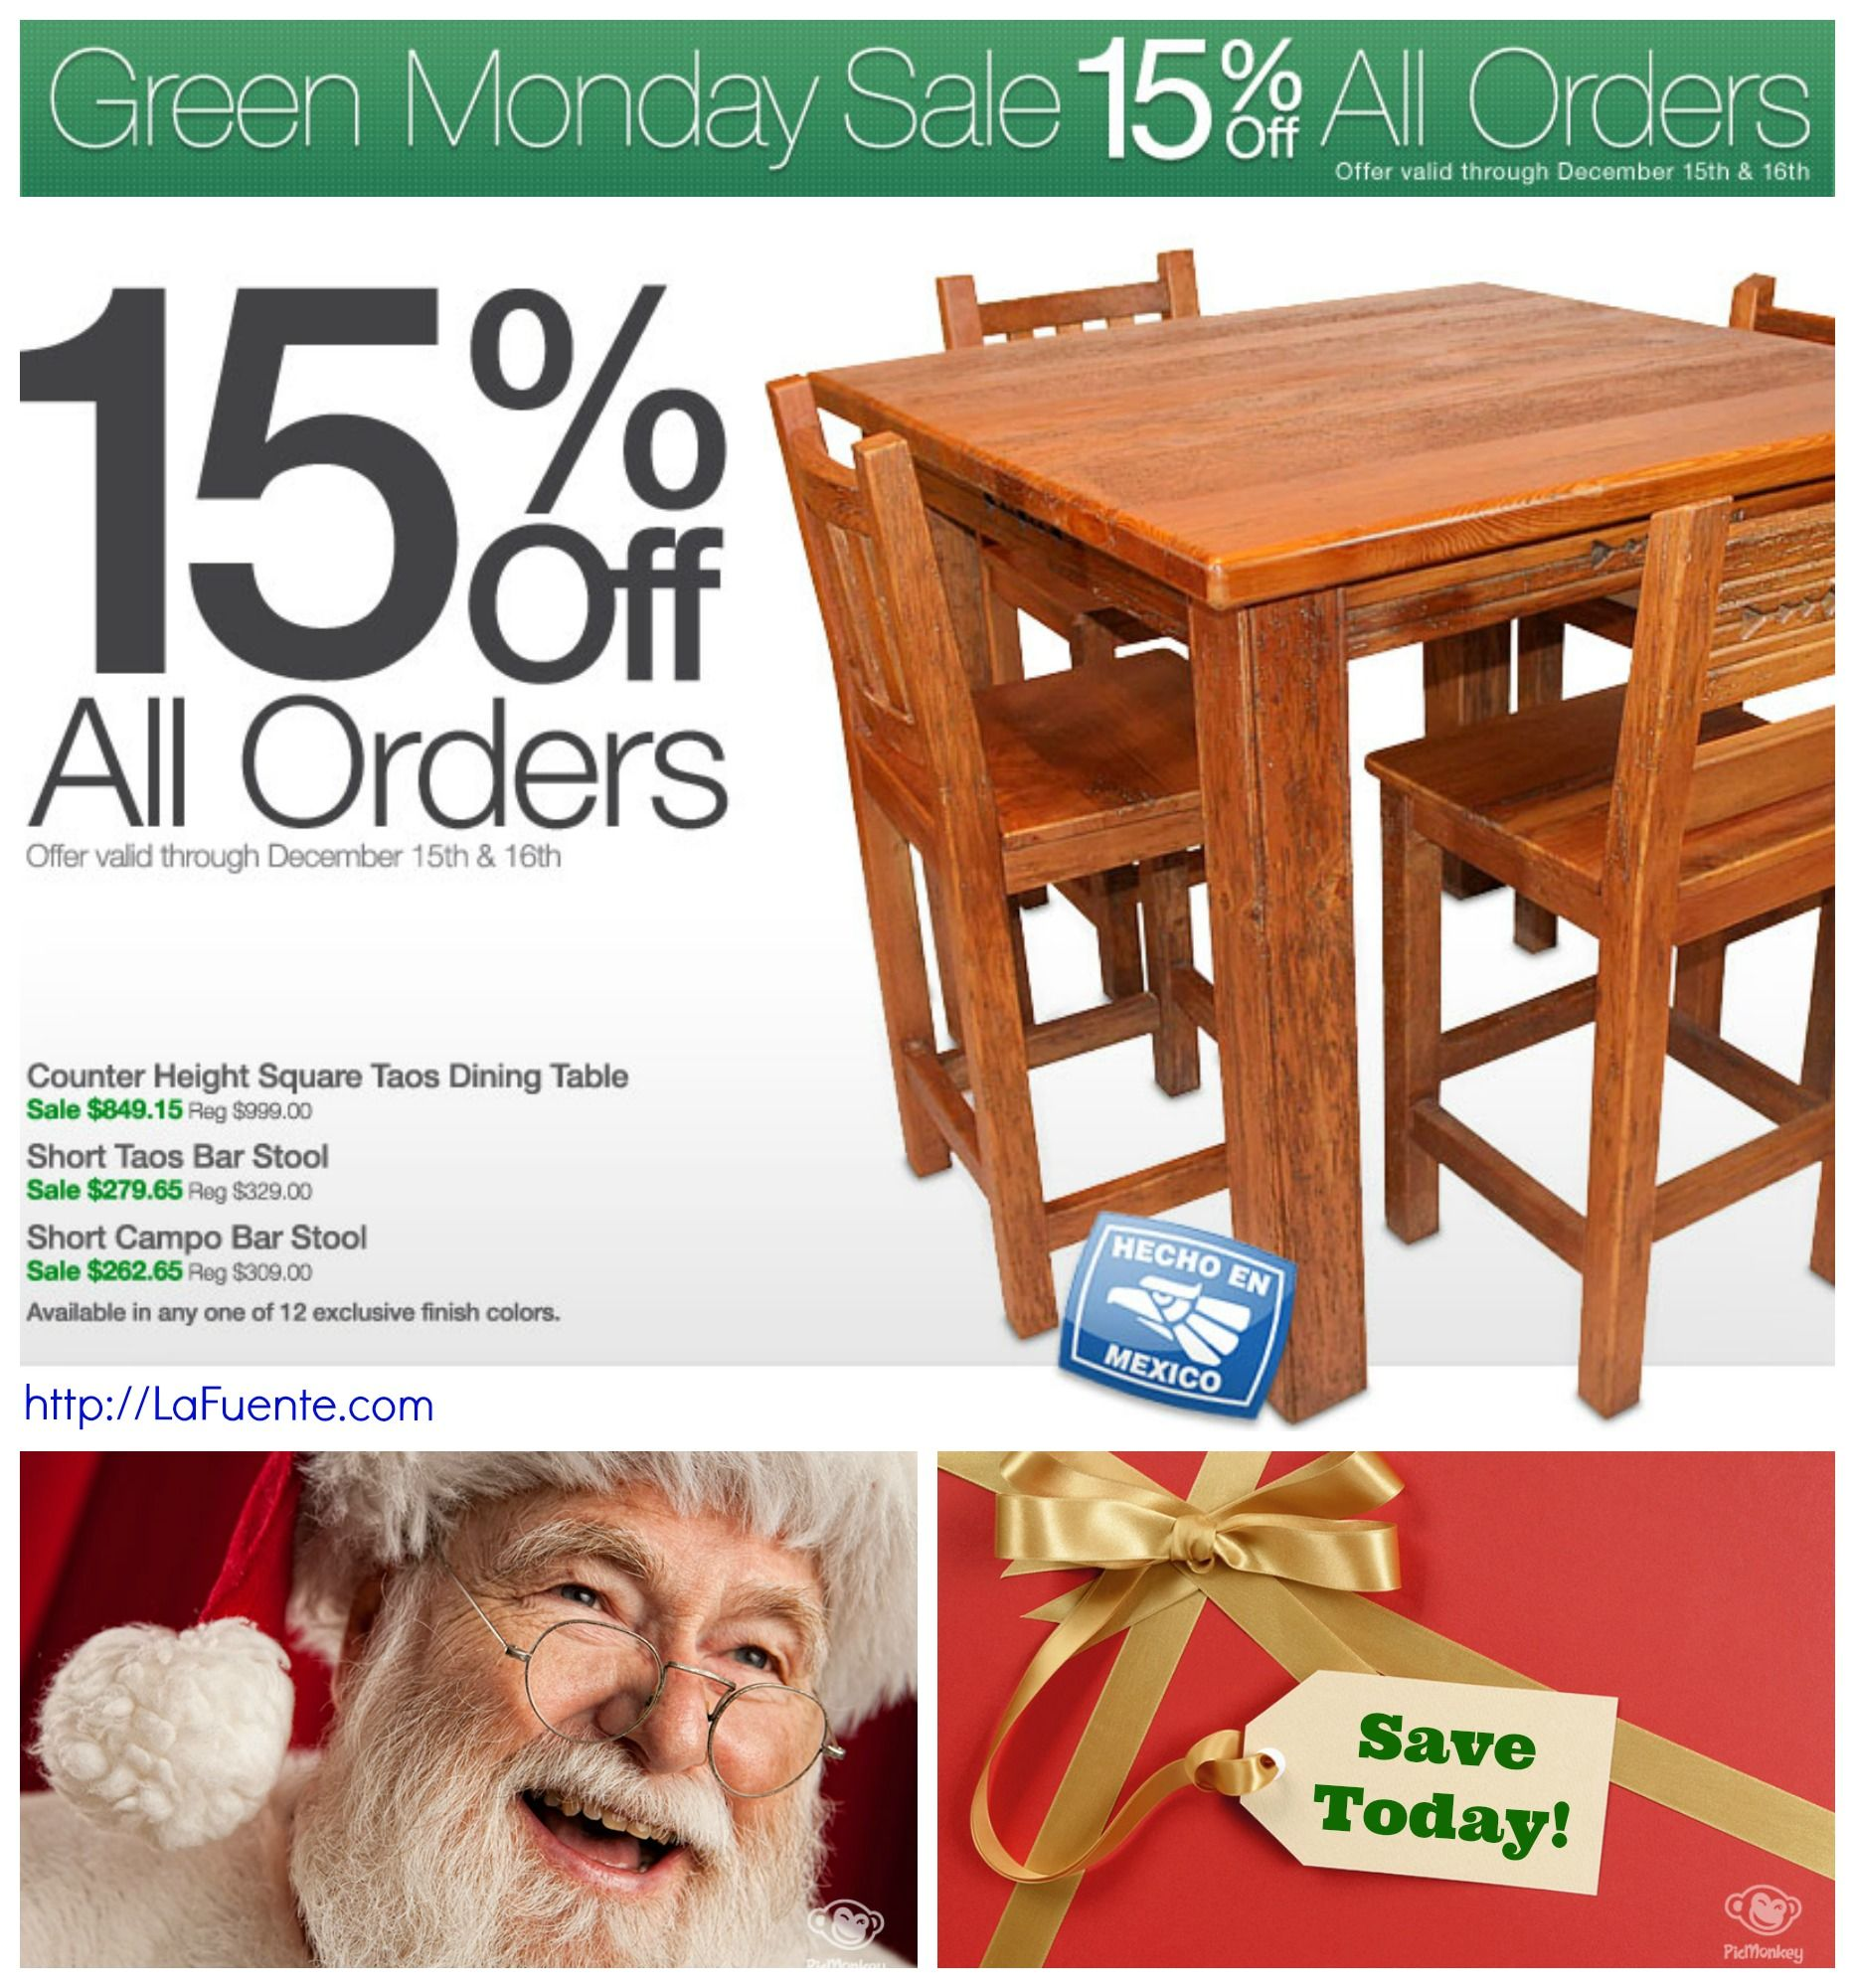 Save 15 off everything in our store happy green monday from http rustic pine furnituremondays